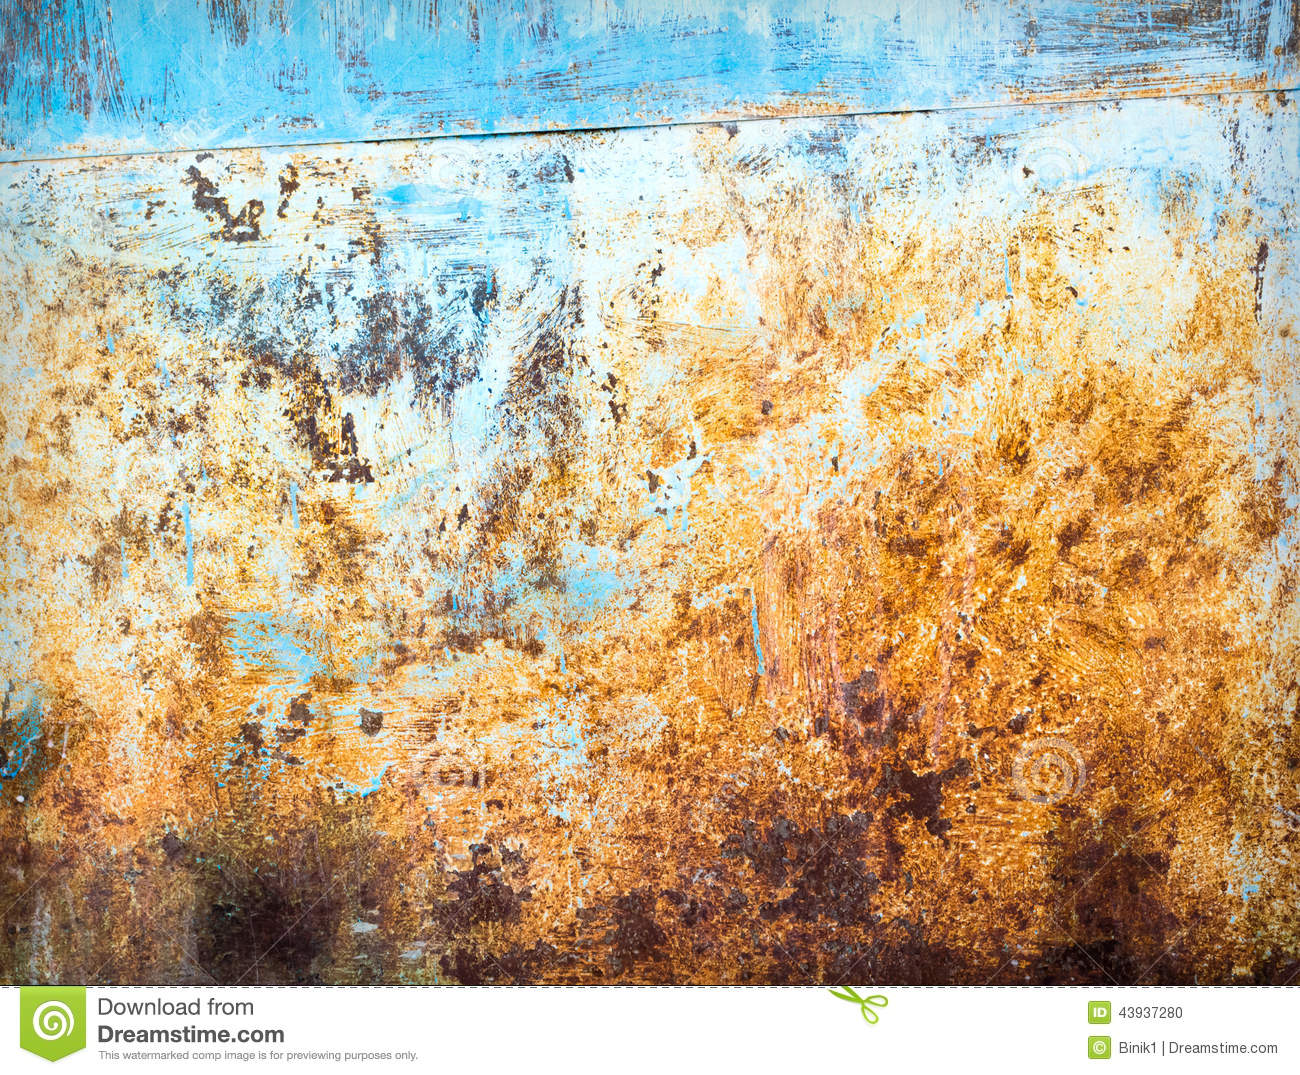 grunge rusty background texture - photo #38